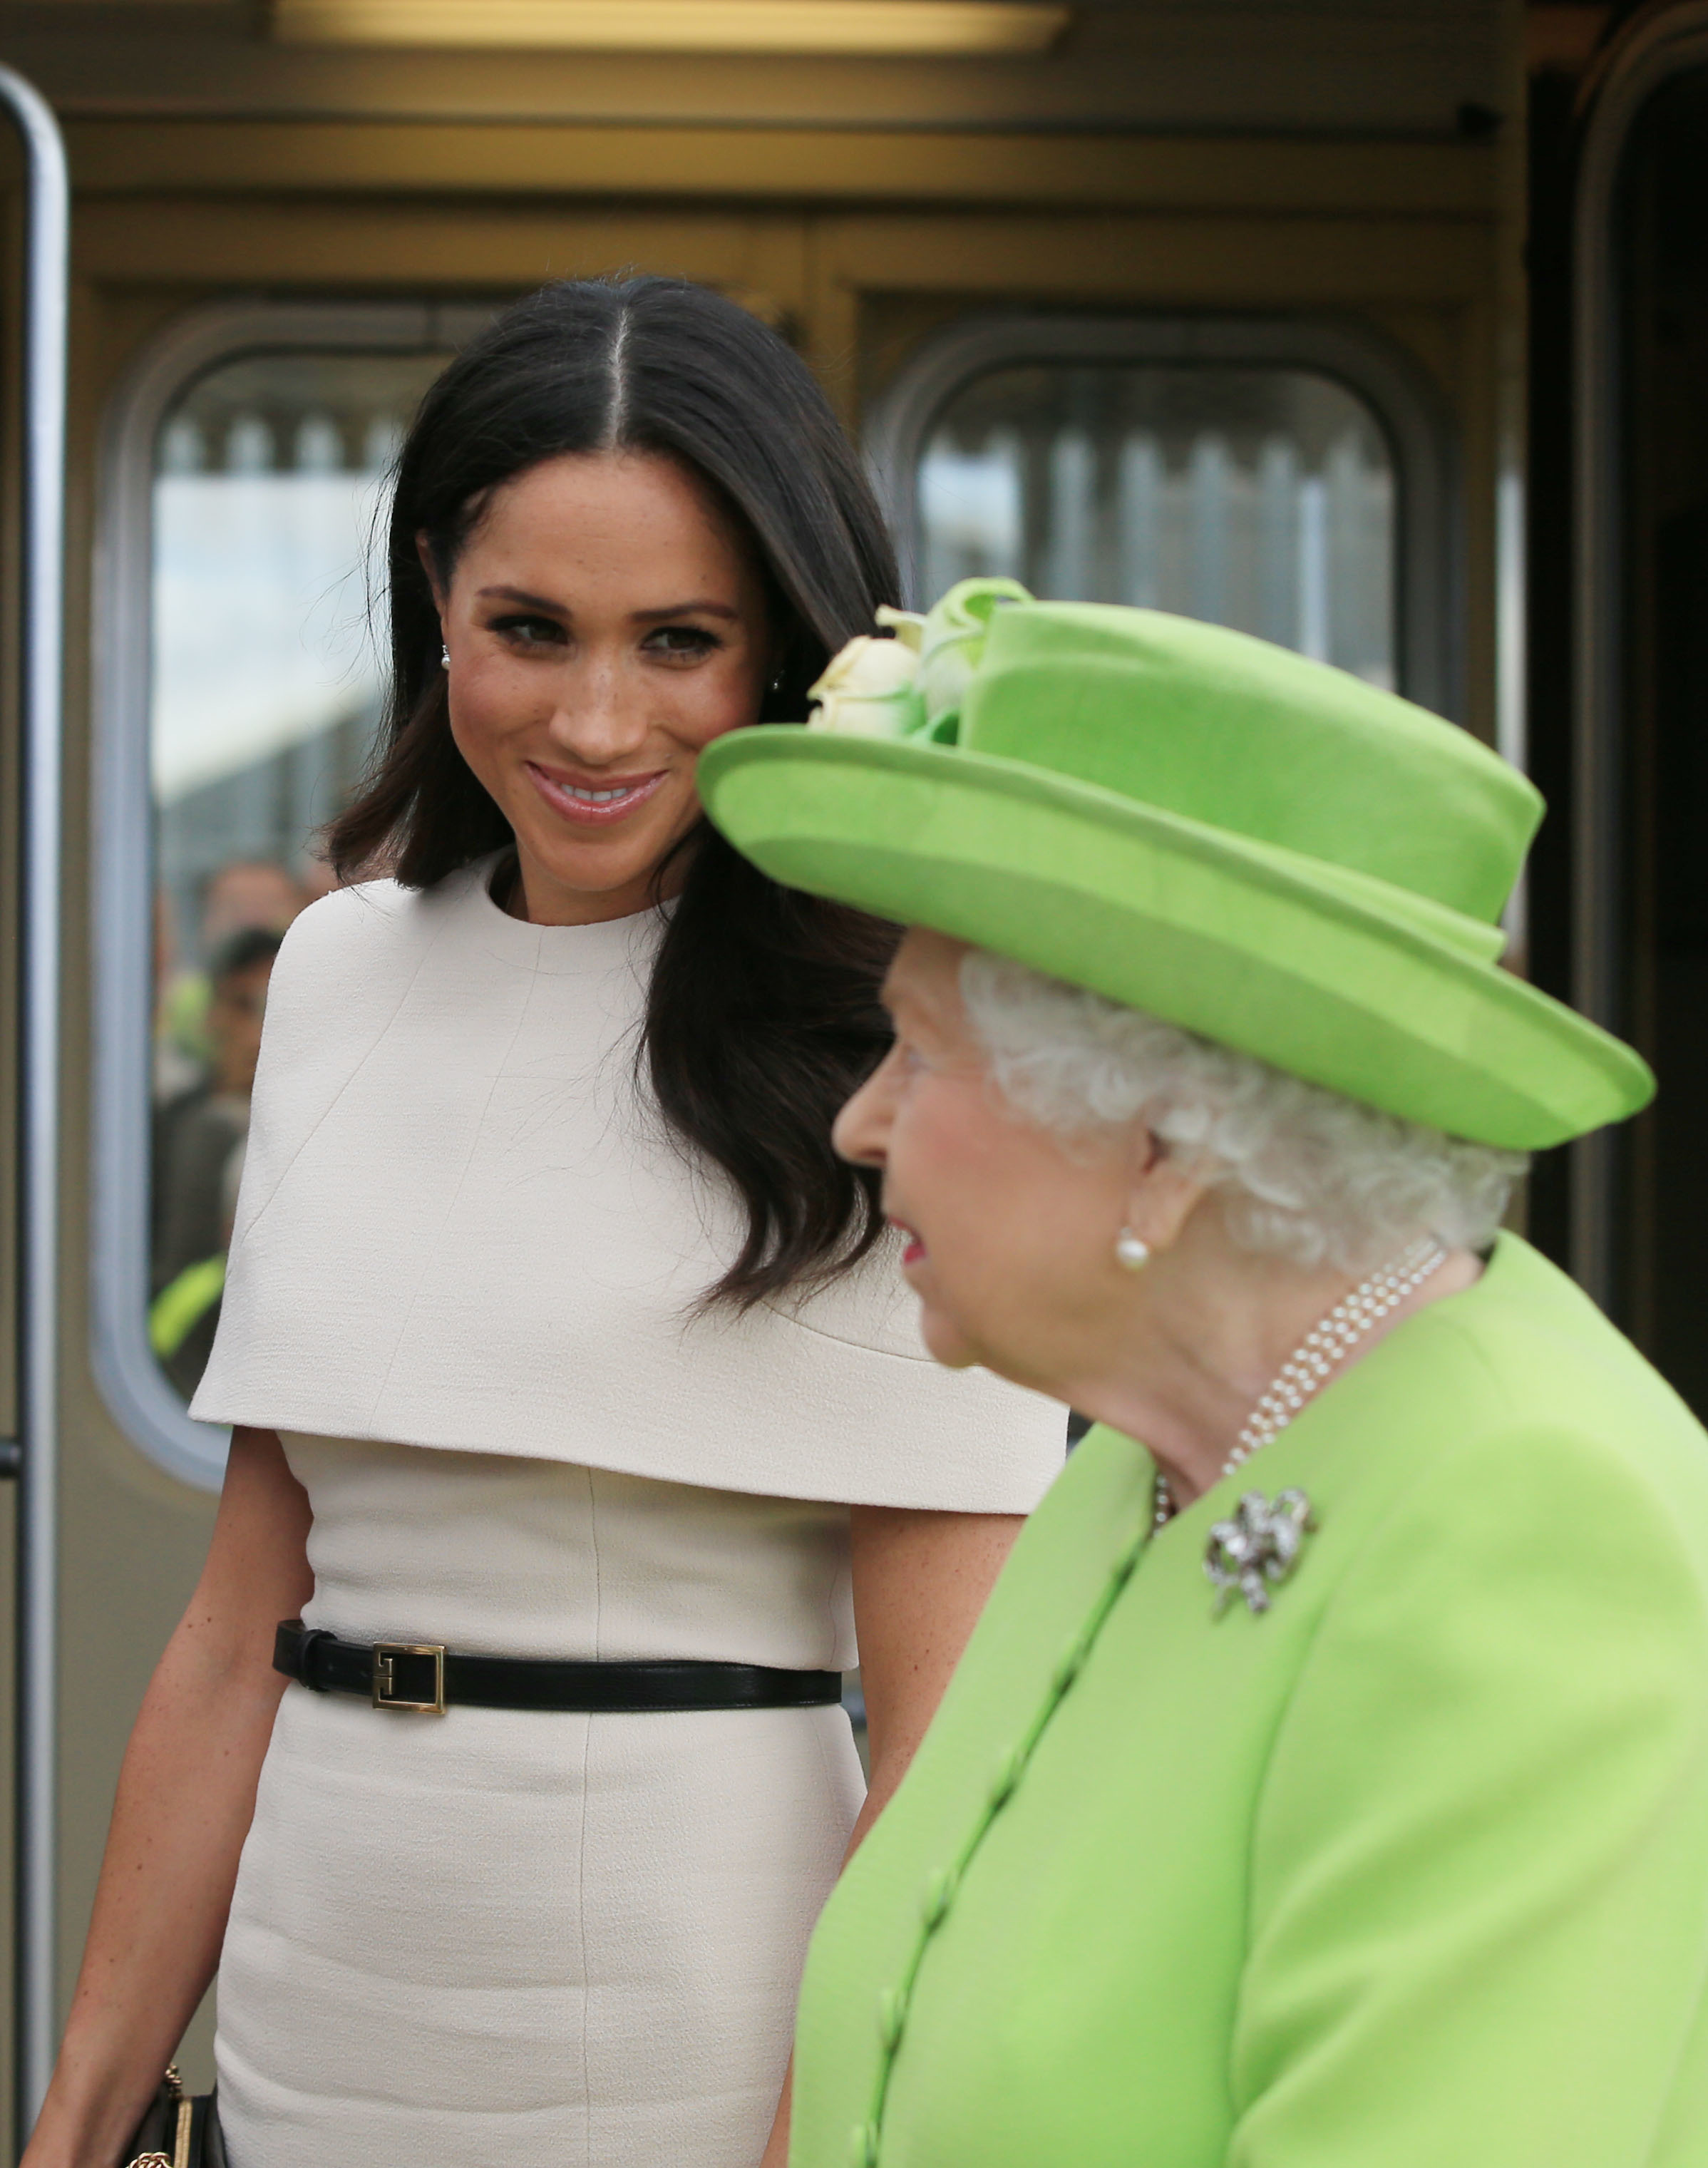 Duchess Meghan and the Queen mark Grenfell Tower fire anniversary